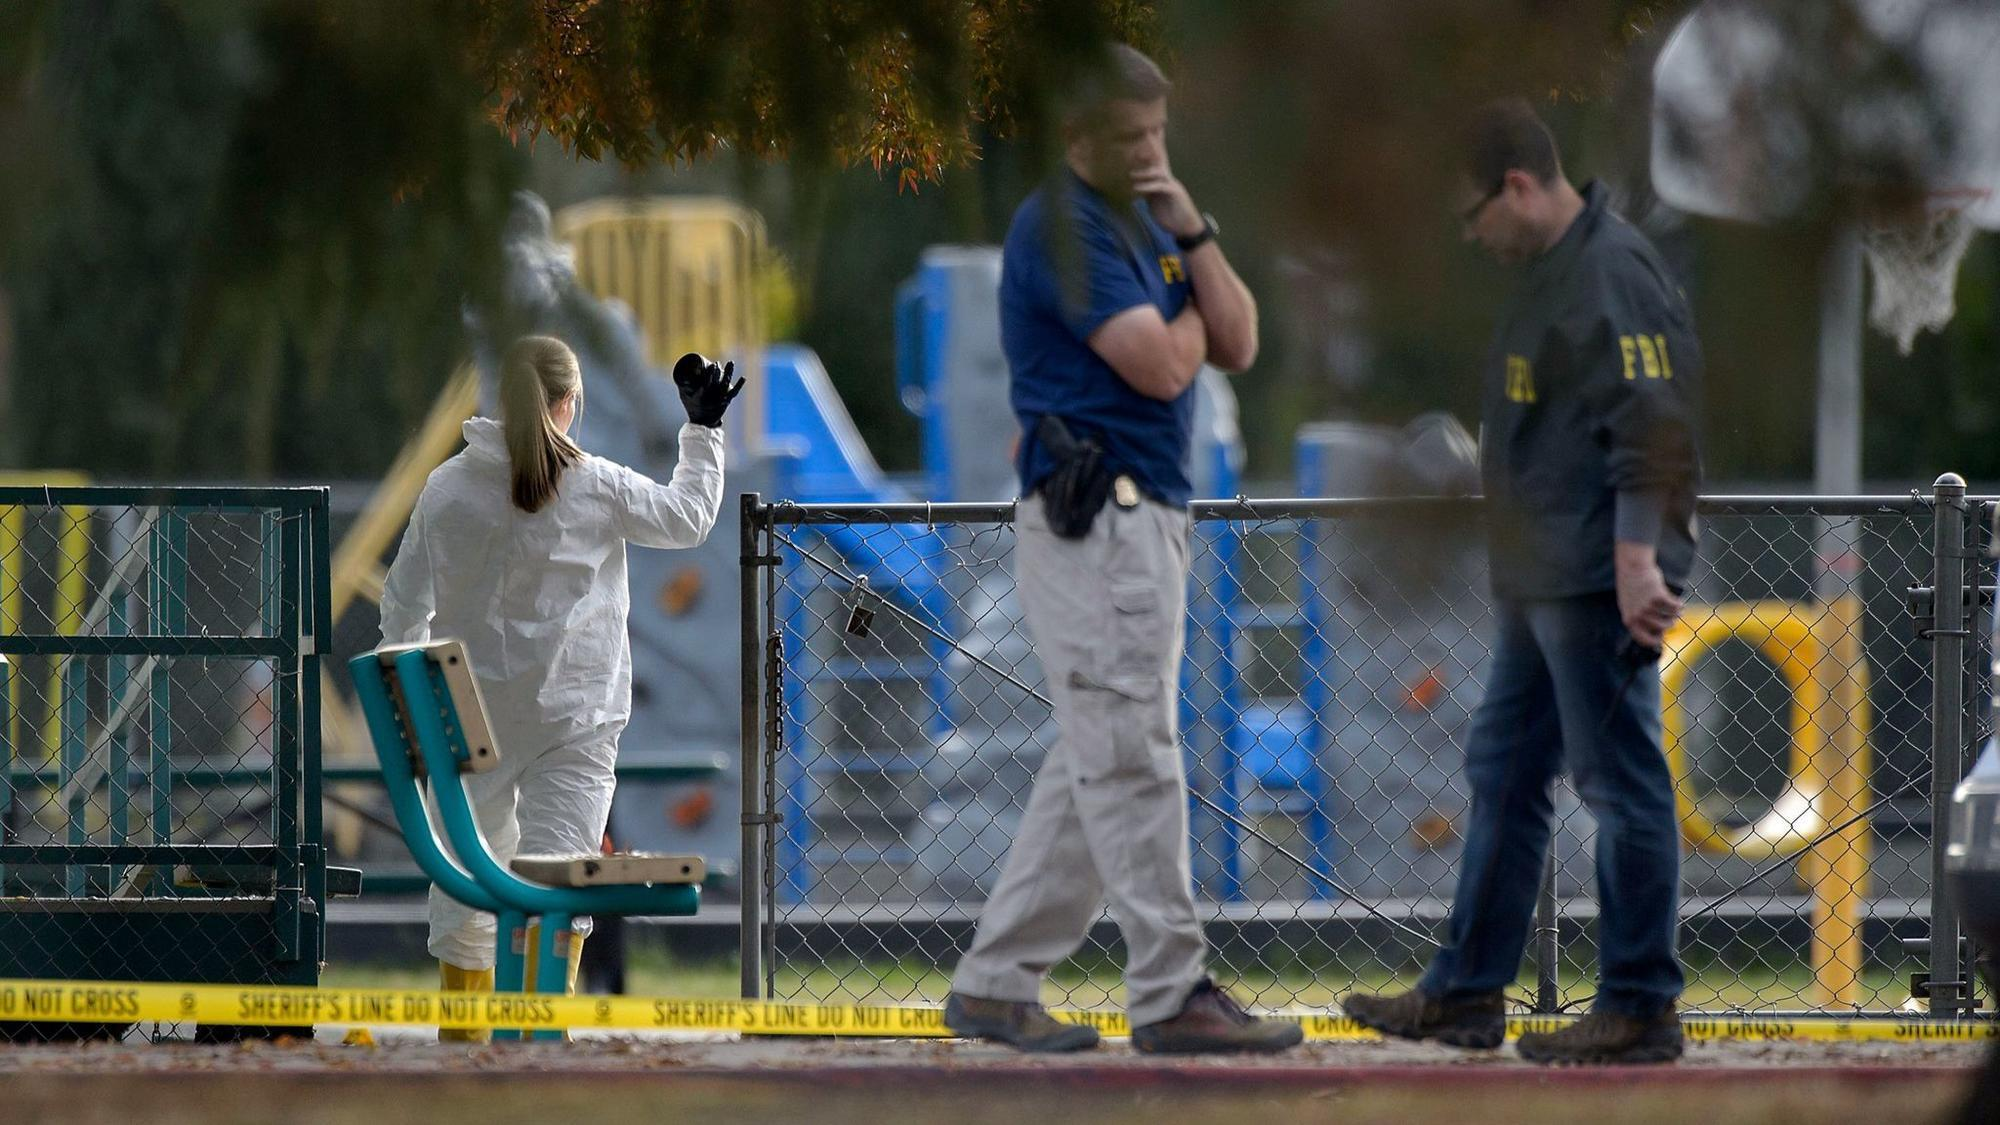 Why no children died during the Rancho Tehama school shooting